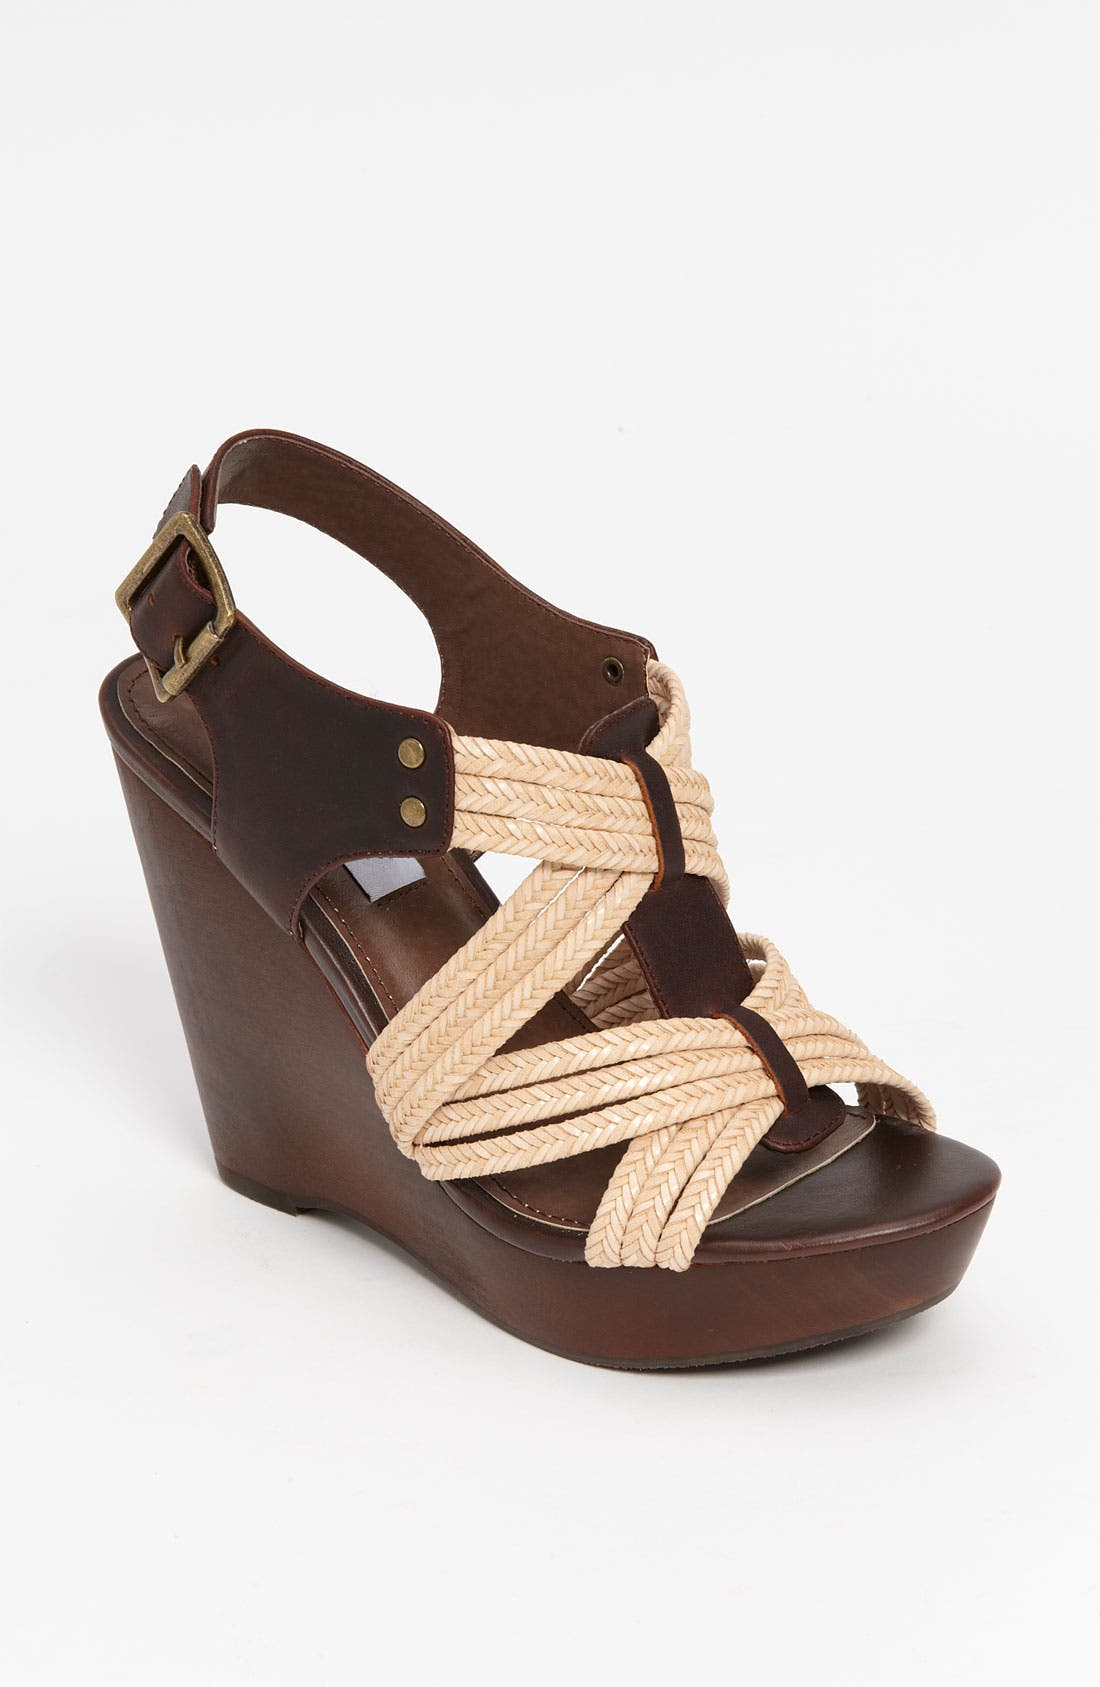 Alternate Image 1 Selected - Steve Madden 'Tampaa' Sandal